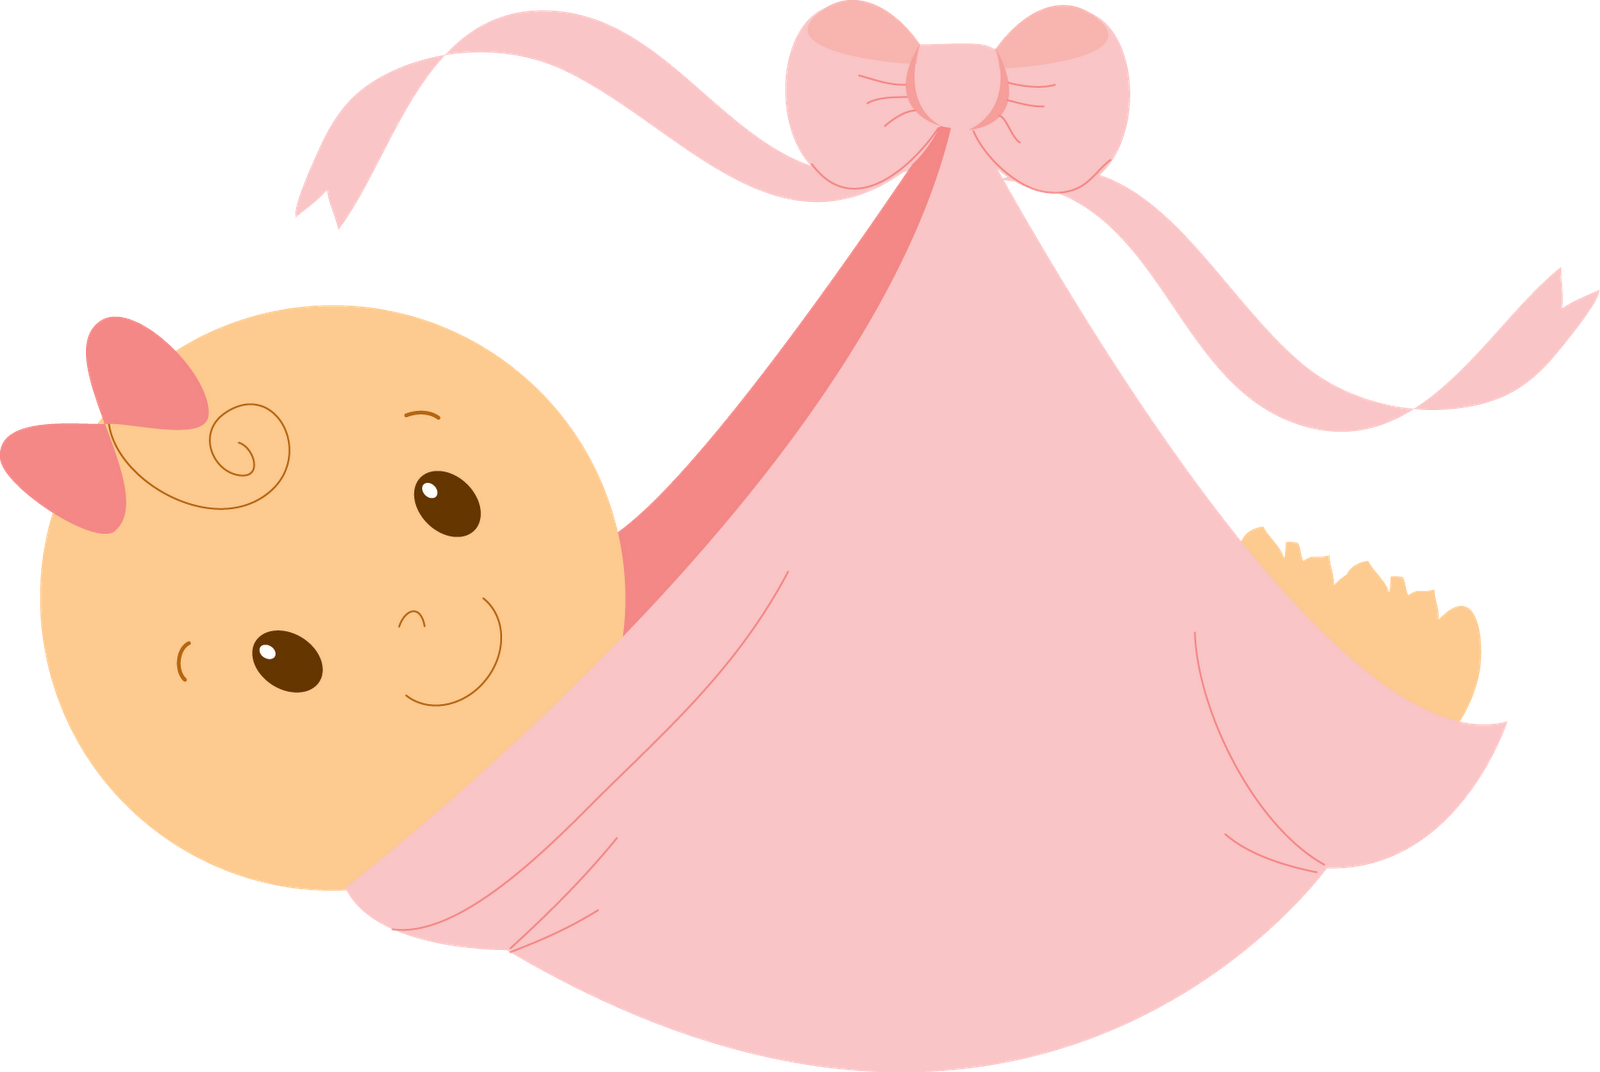 Diaper clipart baby girl. Pin by maram on